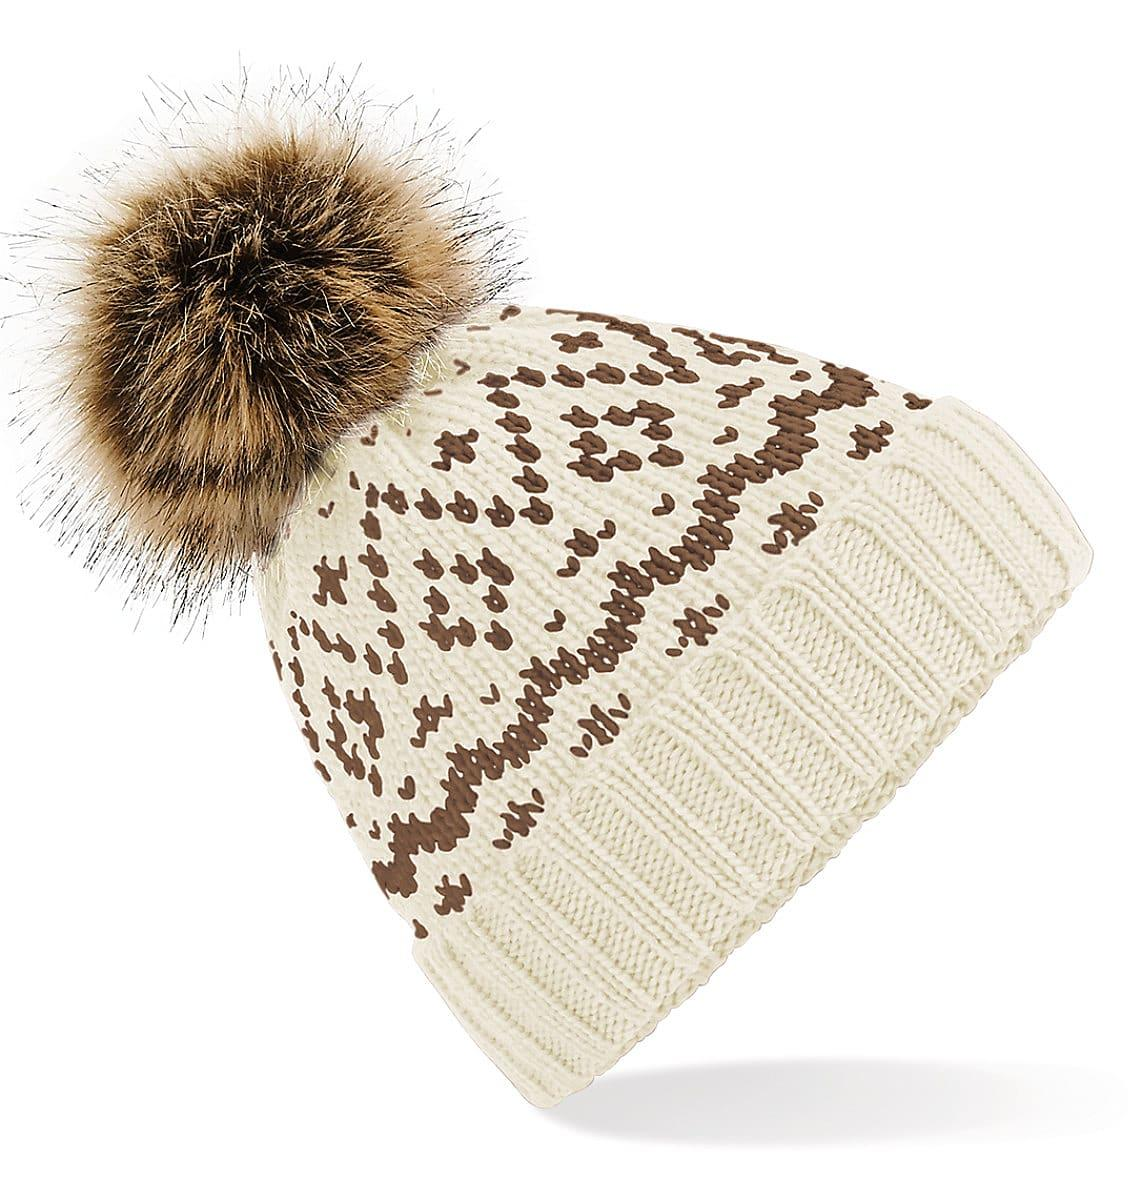 Beechfield Fair Isle Pop Pom Beanie Hat in Off-White / Mocha (Product Code: B411)